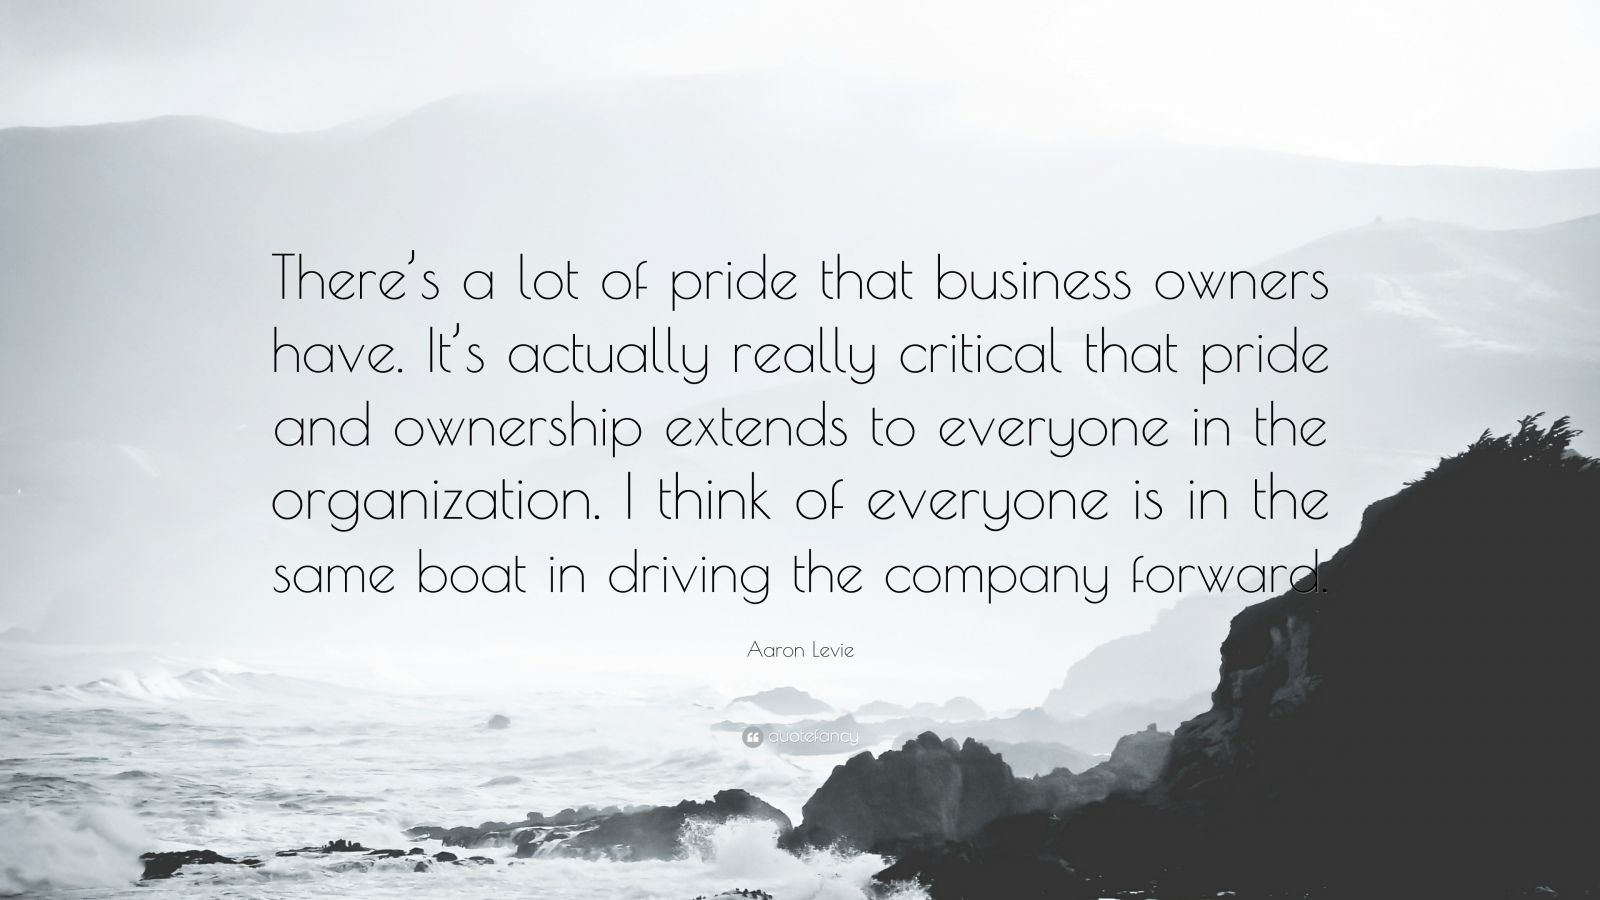 """Aaron Levie Quote: """"There's a lot of pride that business owners have. It's actually really critical that pride and ownership extends to everyone in the organization. I think of everyone is in the same boat in driving the company forward."""""""